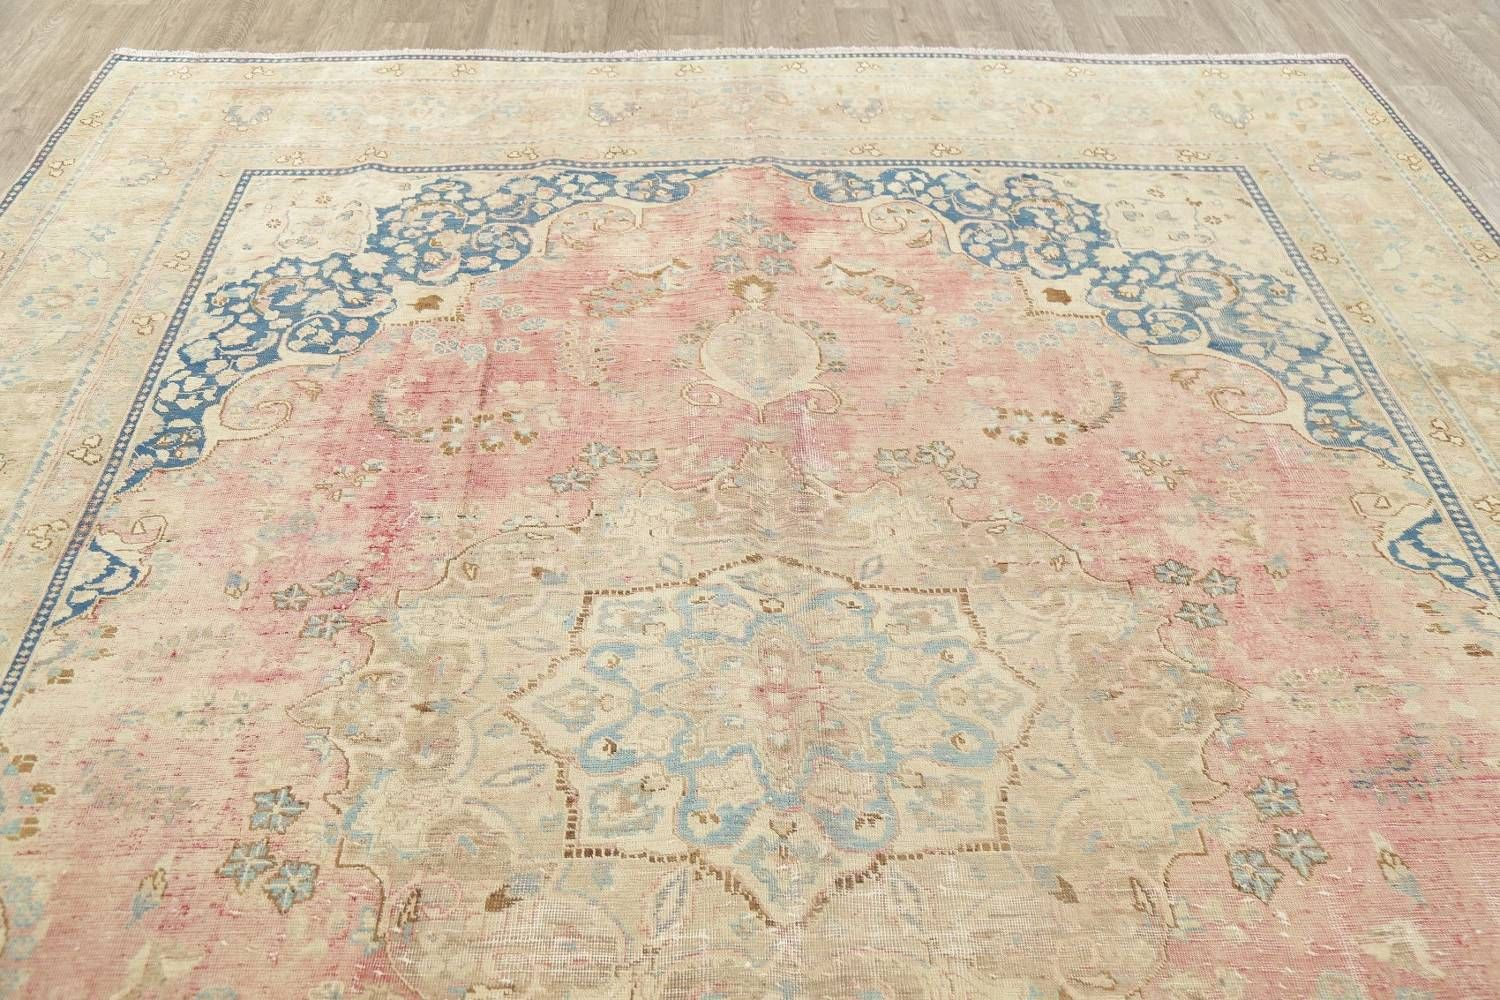 Antique Mashad Muted Distressed Persian Rug 10x12 Distressed Persian Rug Persian Rug Rugs